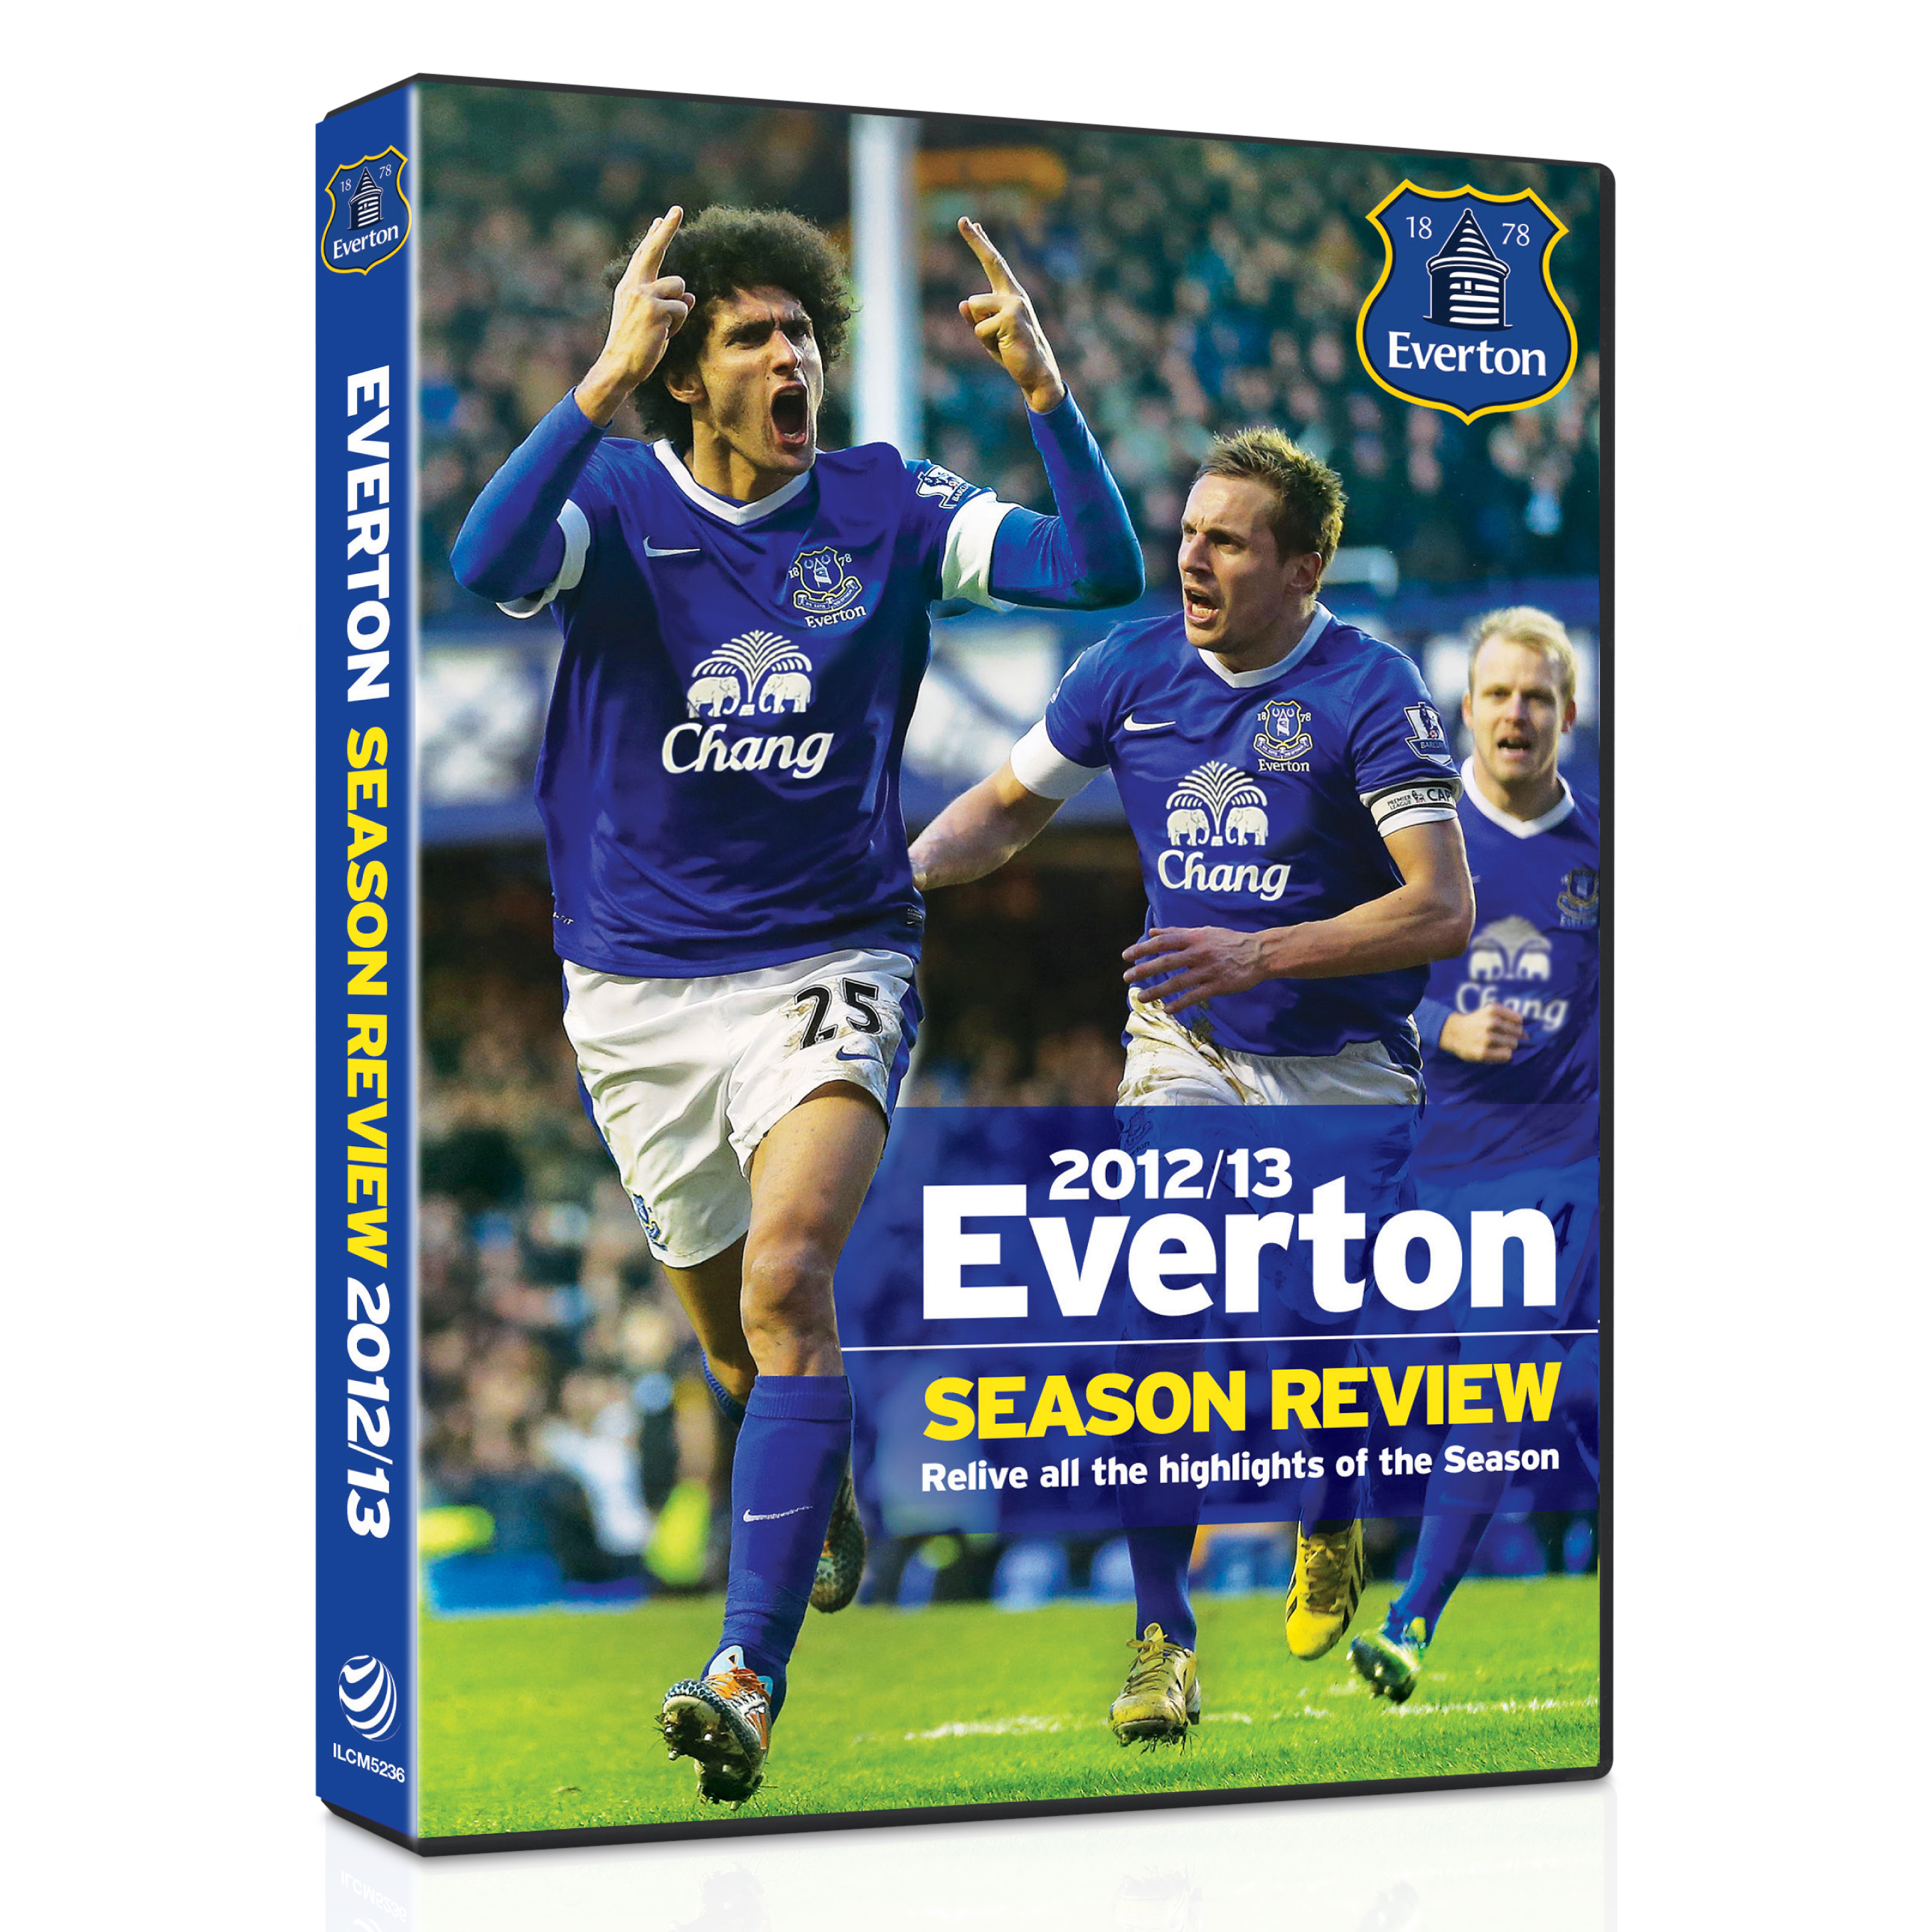 Everton Season Review 2012/13 DVD